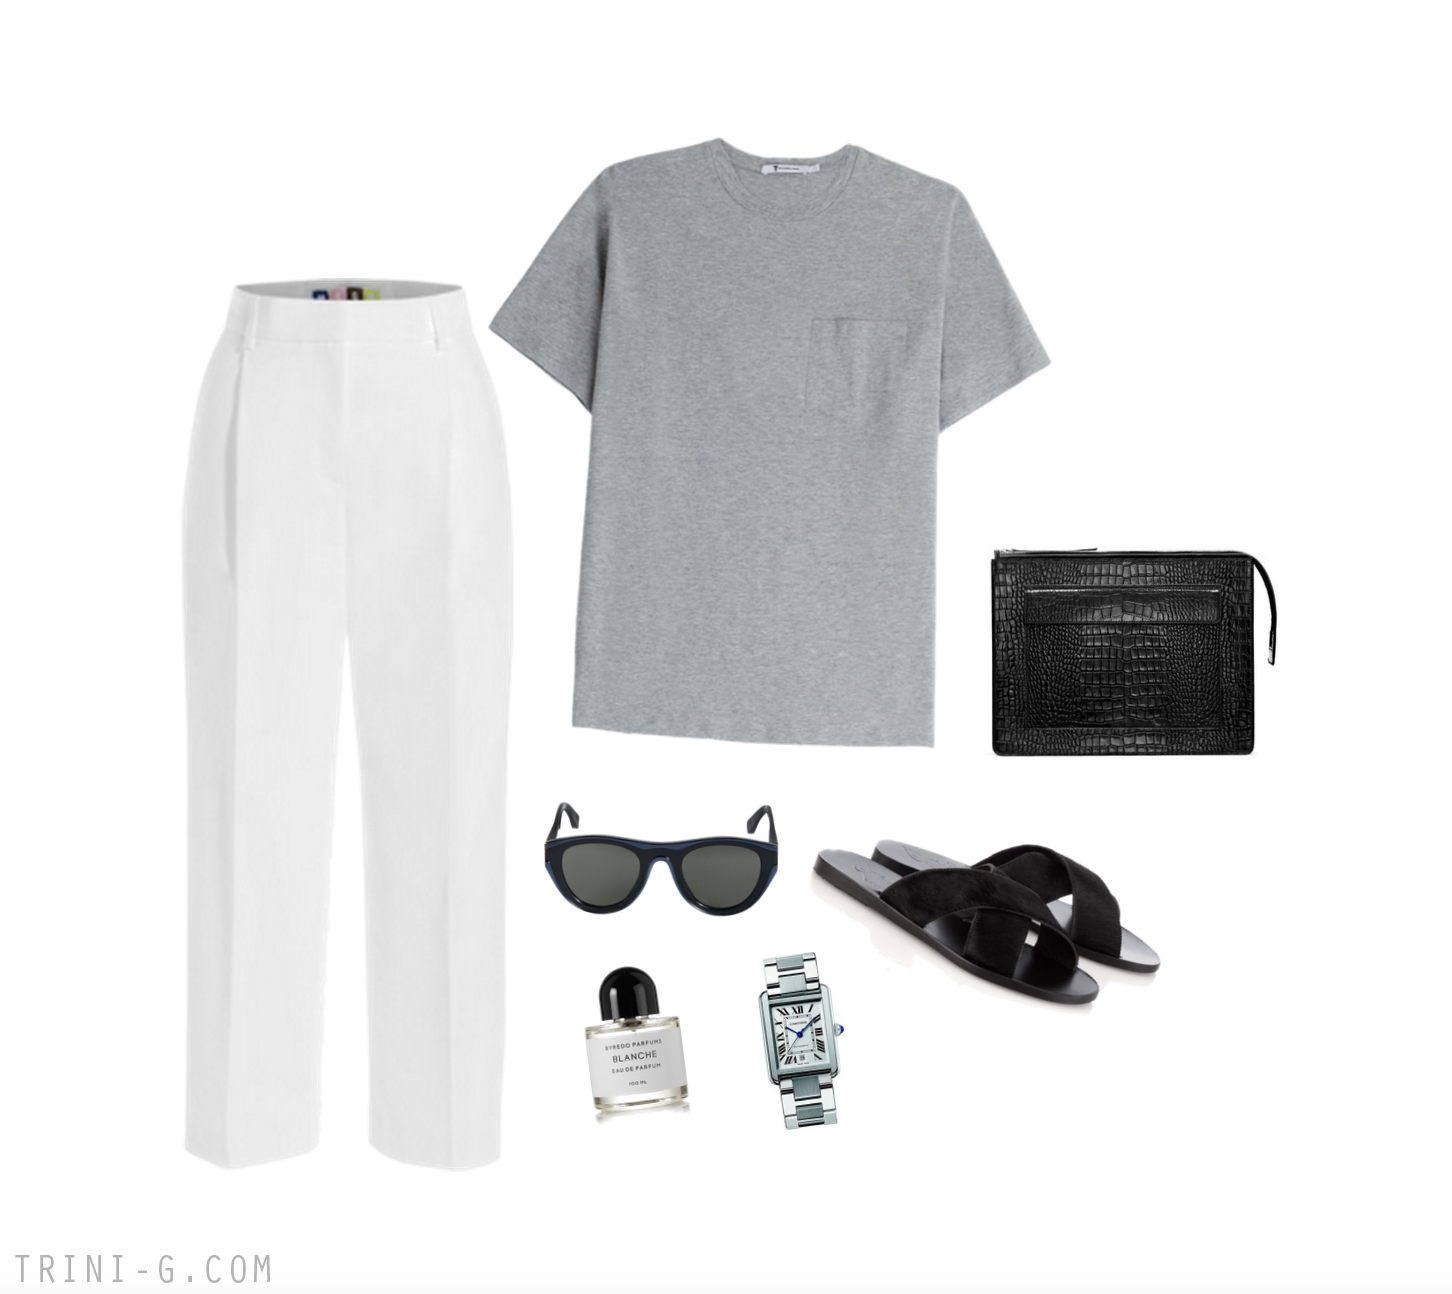 Trini blog | T by Alexander Wang t-shirt Mykita sunglasses